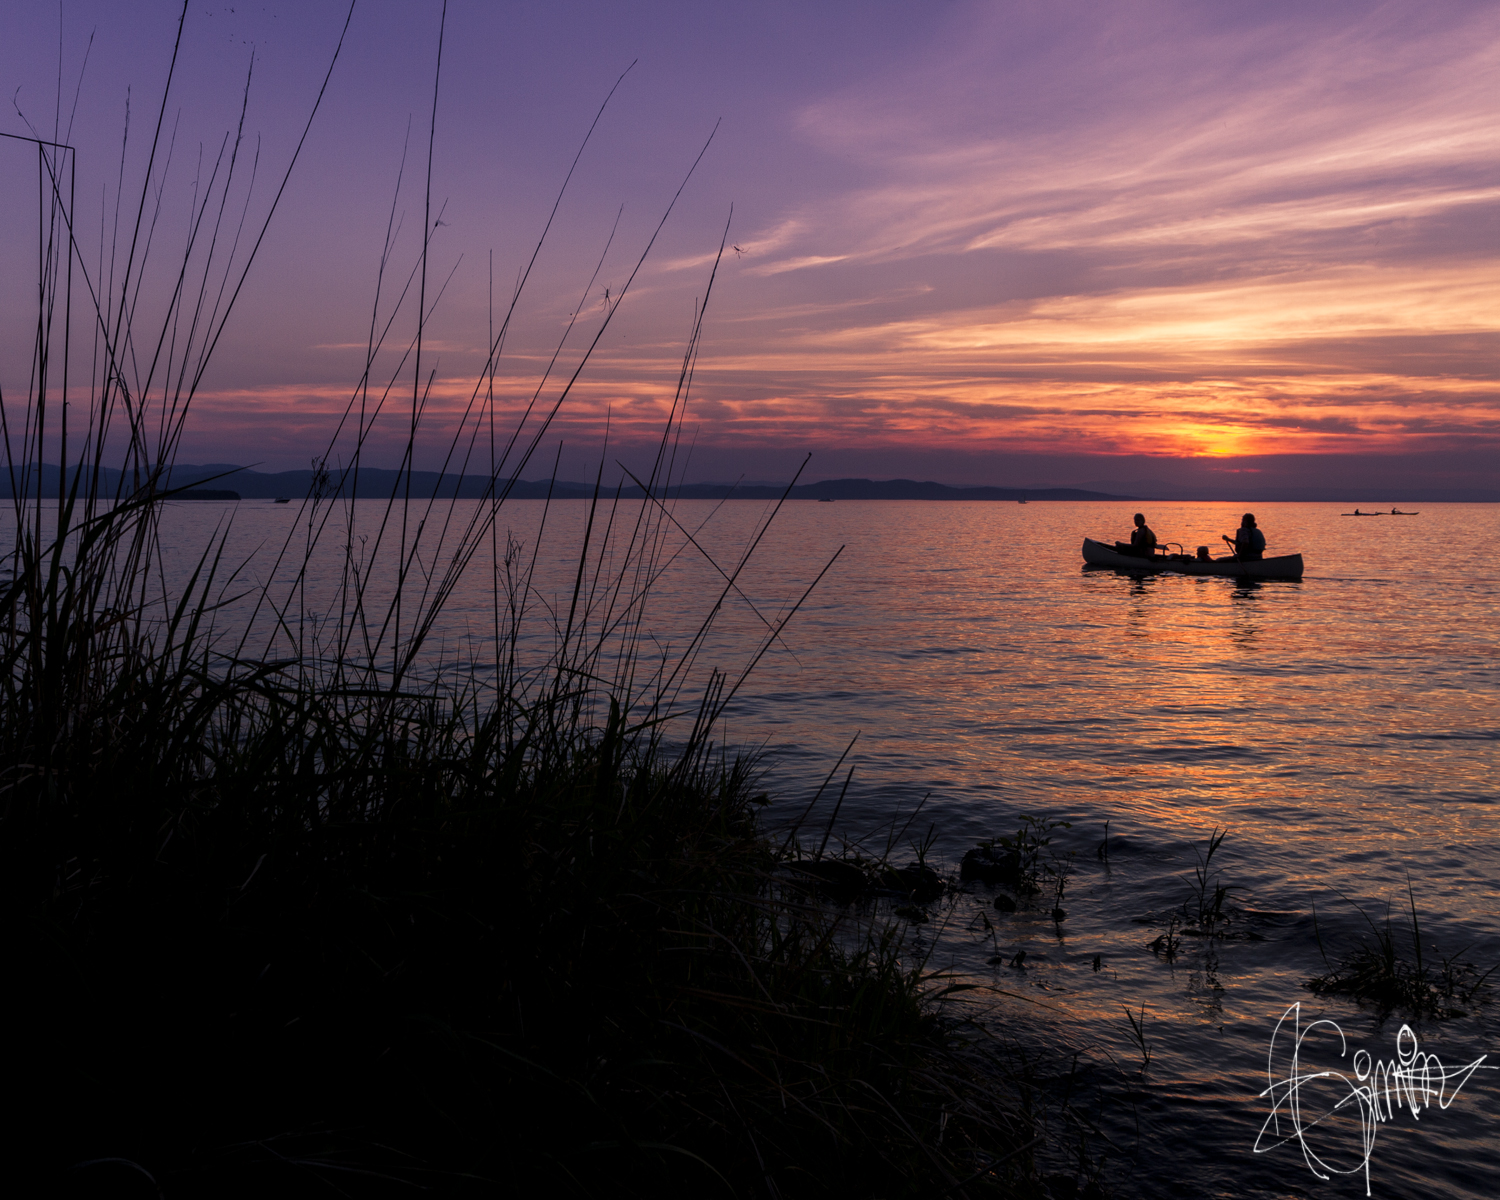 boating-at-sunset-on-lake-champlain-by-vermont-photographer-andrew-gimino.png